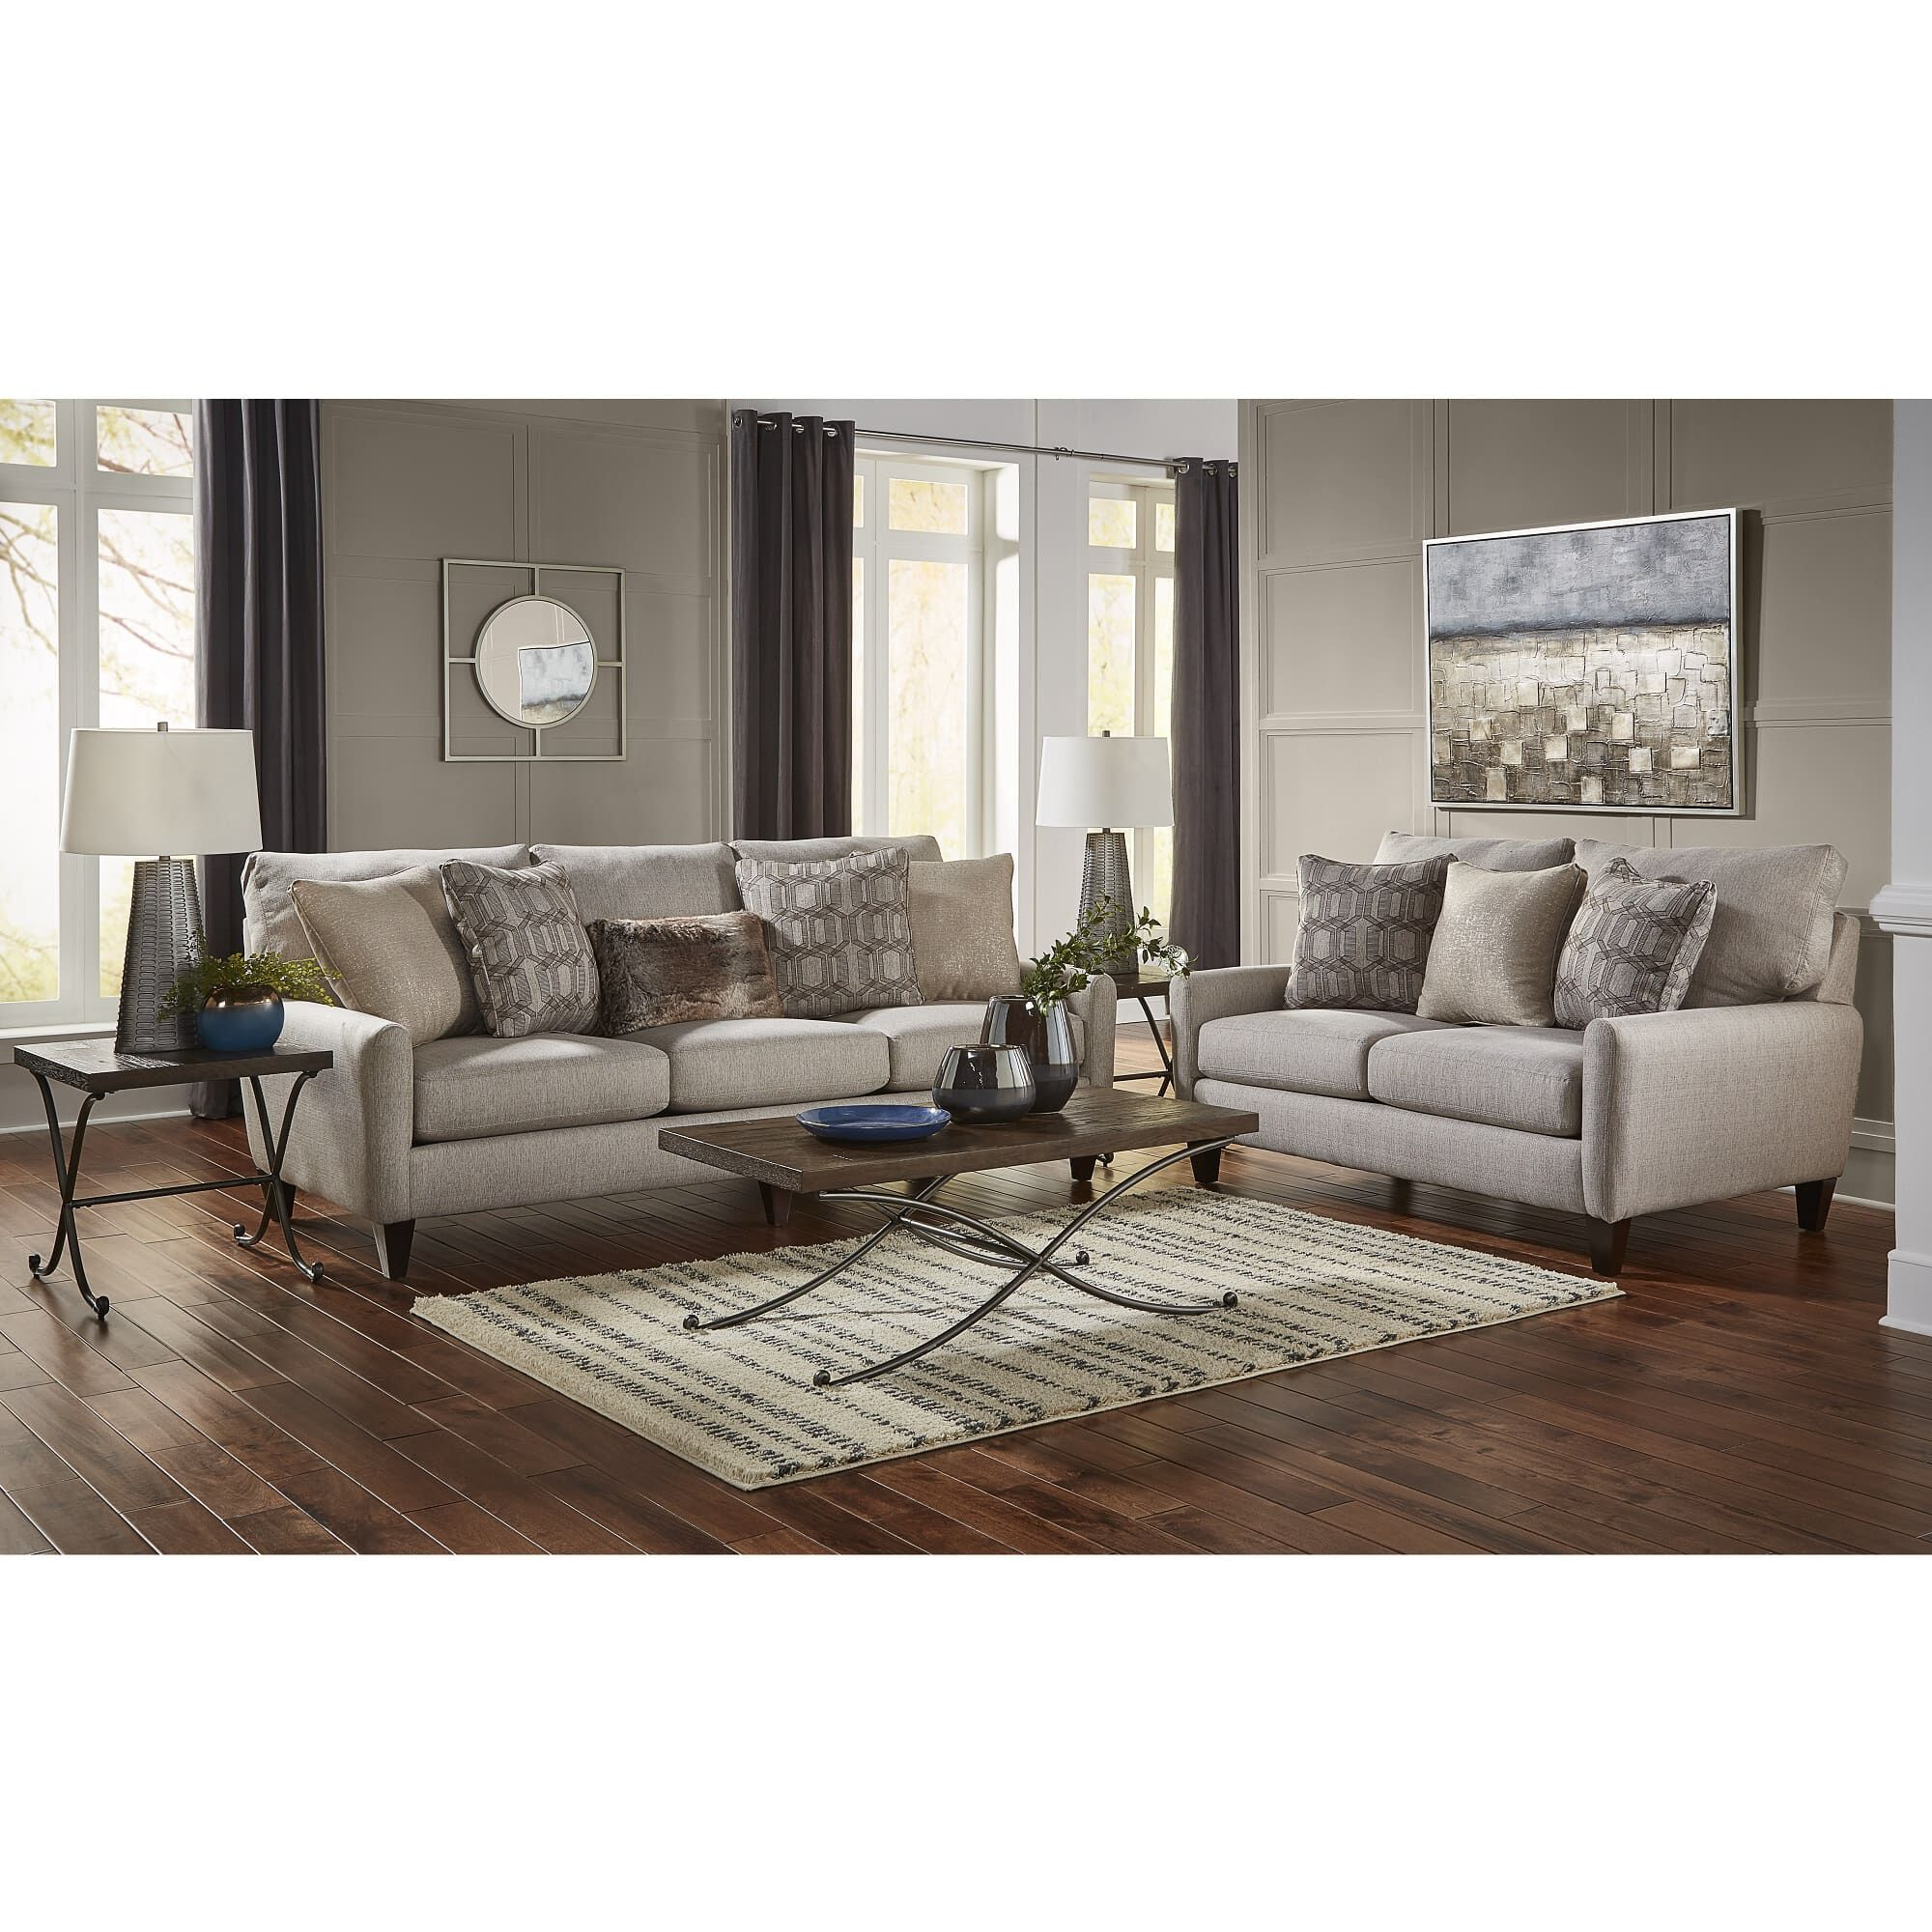 7 Piece Ackland Living Room Collection. Jackson Furniture